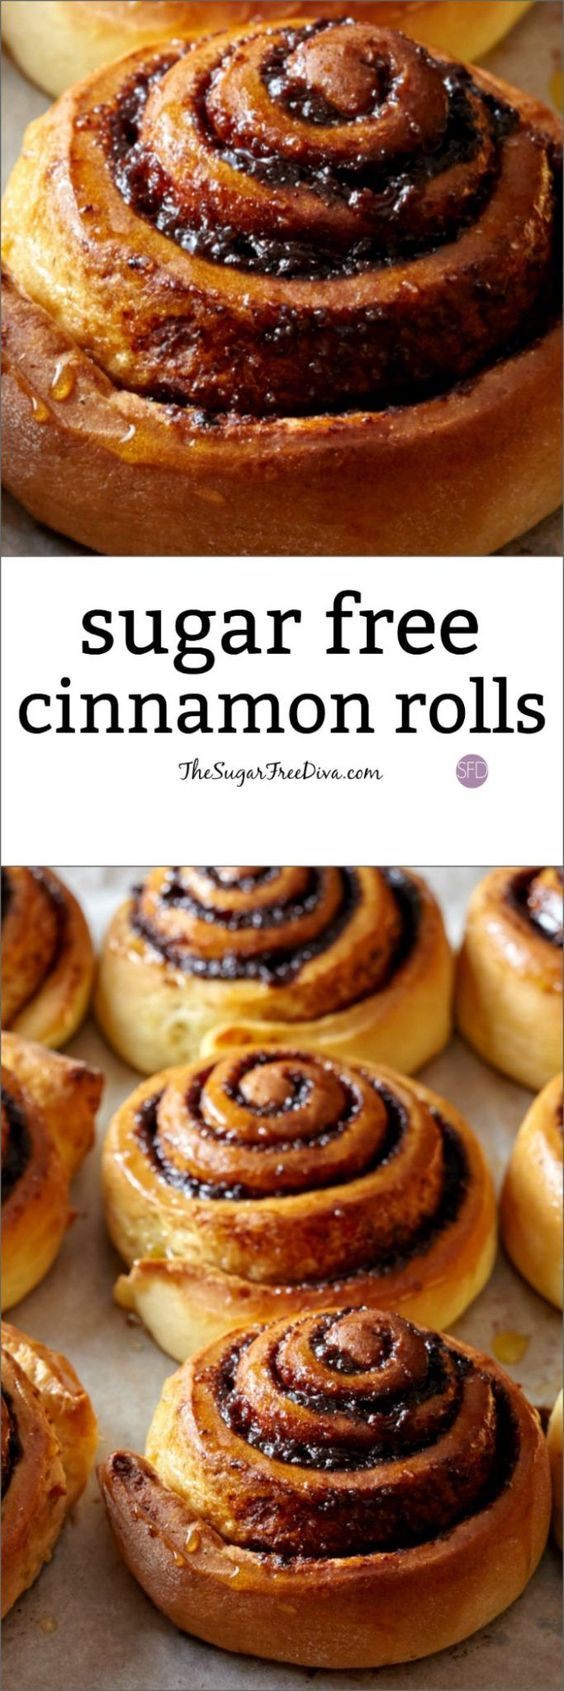 Sugar Free Cinnamon Rolls- #yummy #recipe for #sugarfree #cinnamon #rolls